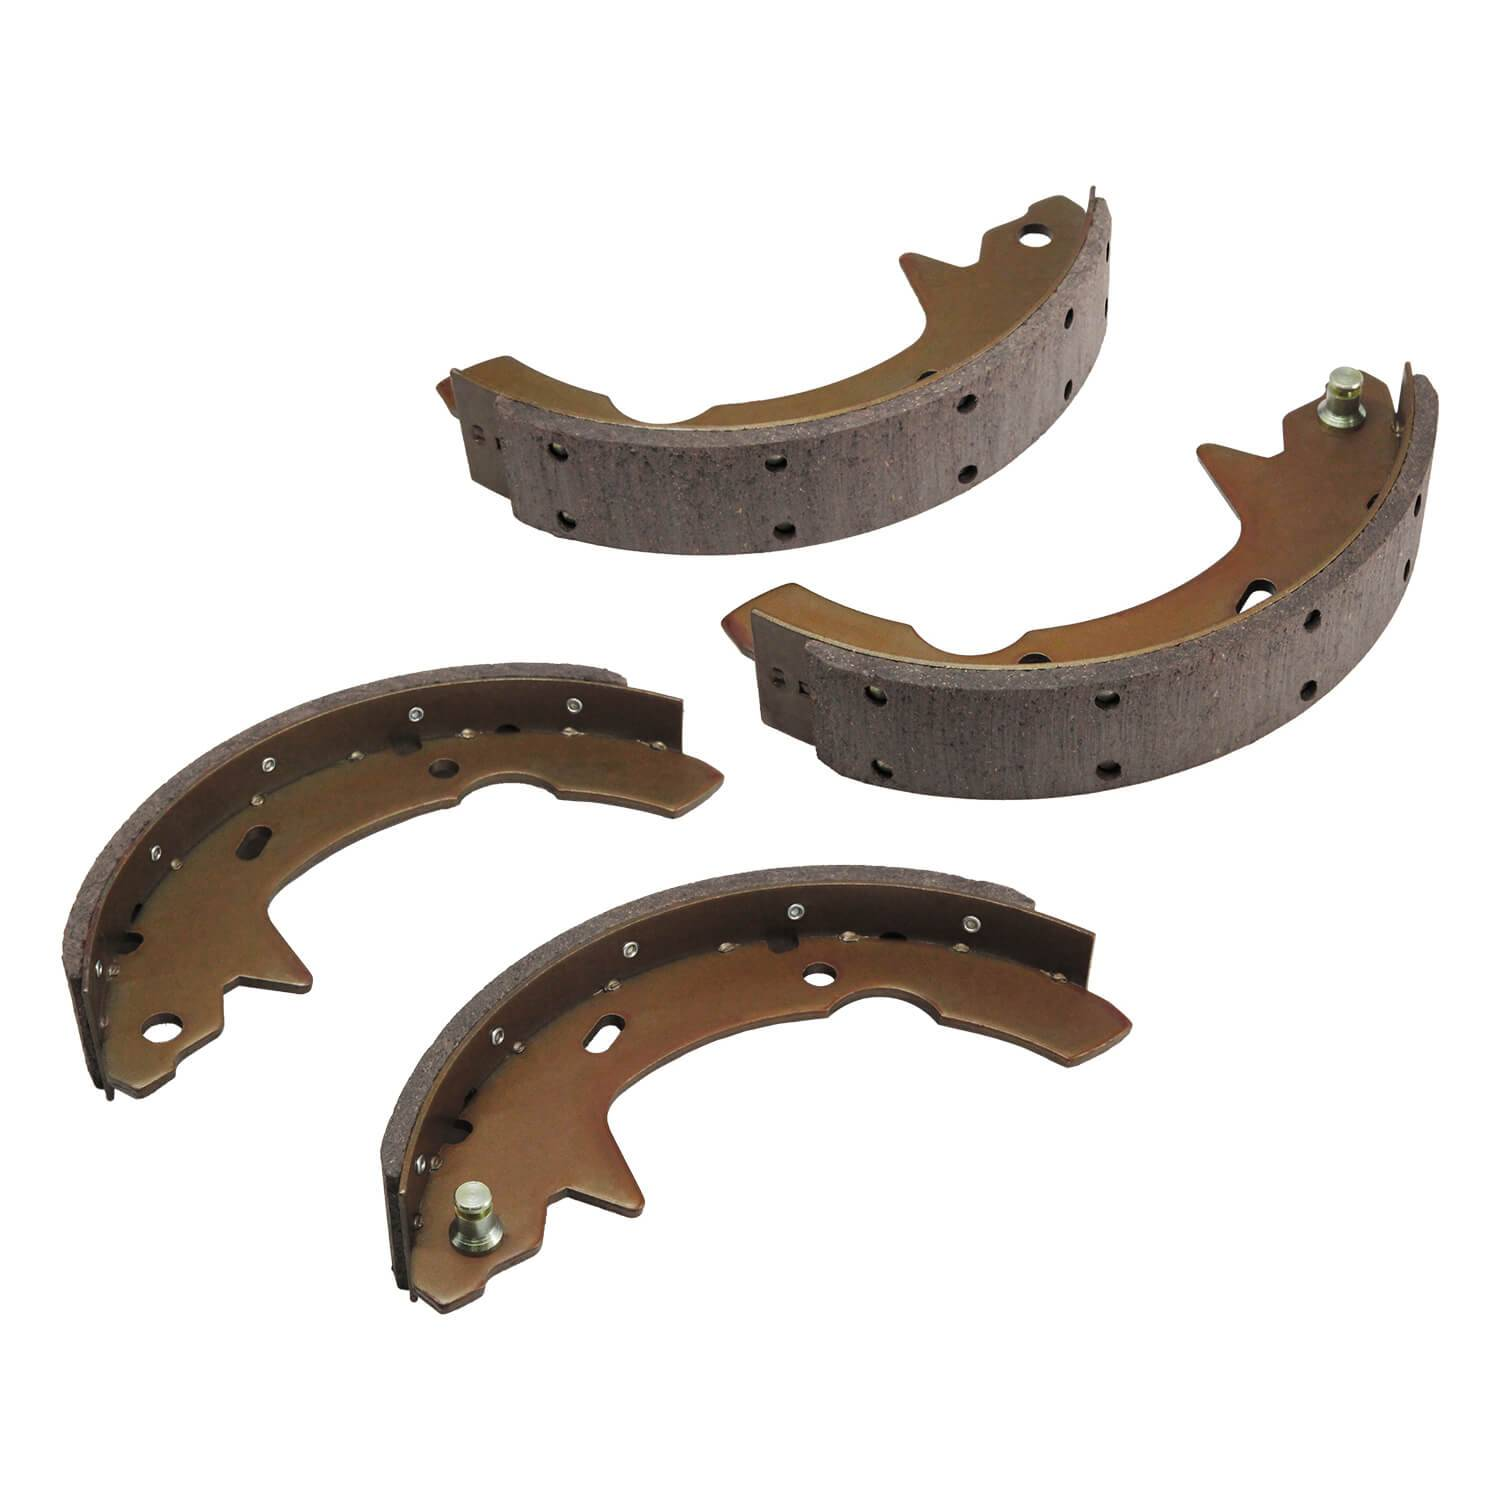 Brake Shoe Thickness In 32nds : Canadabrakes product details shopping brake shoes a